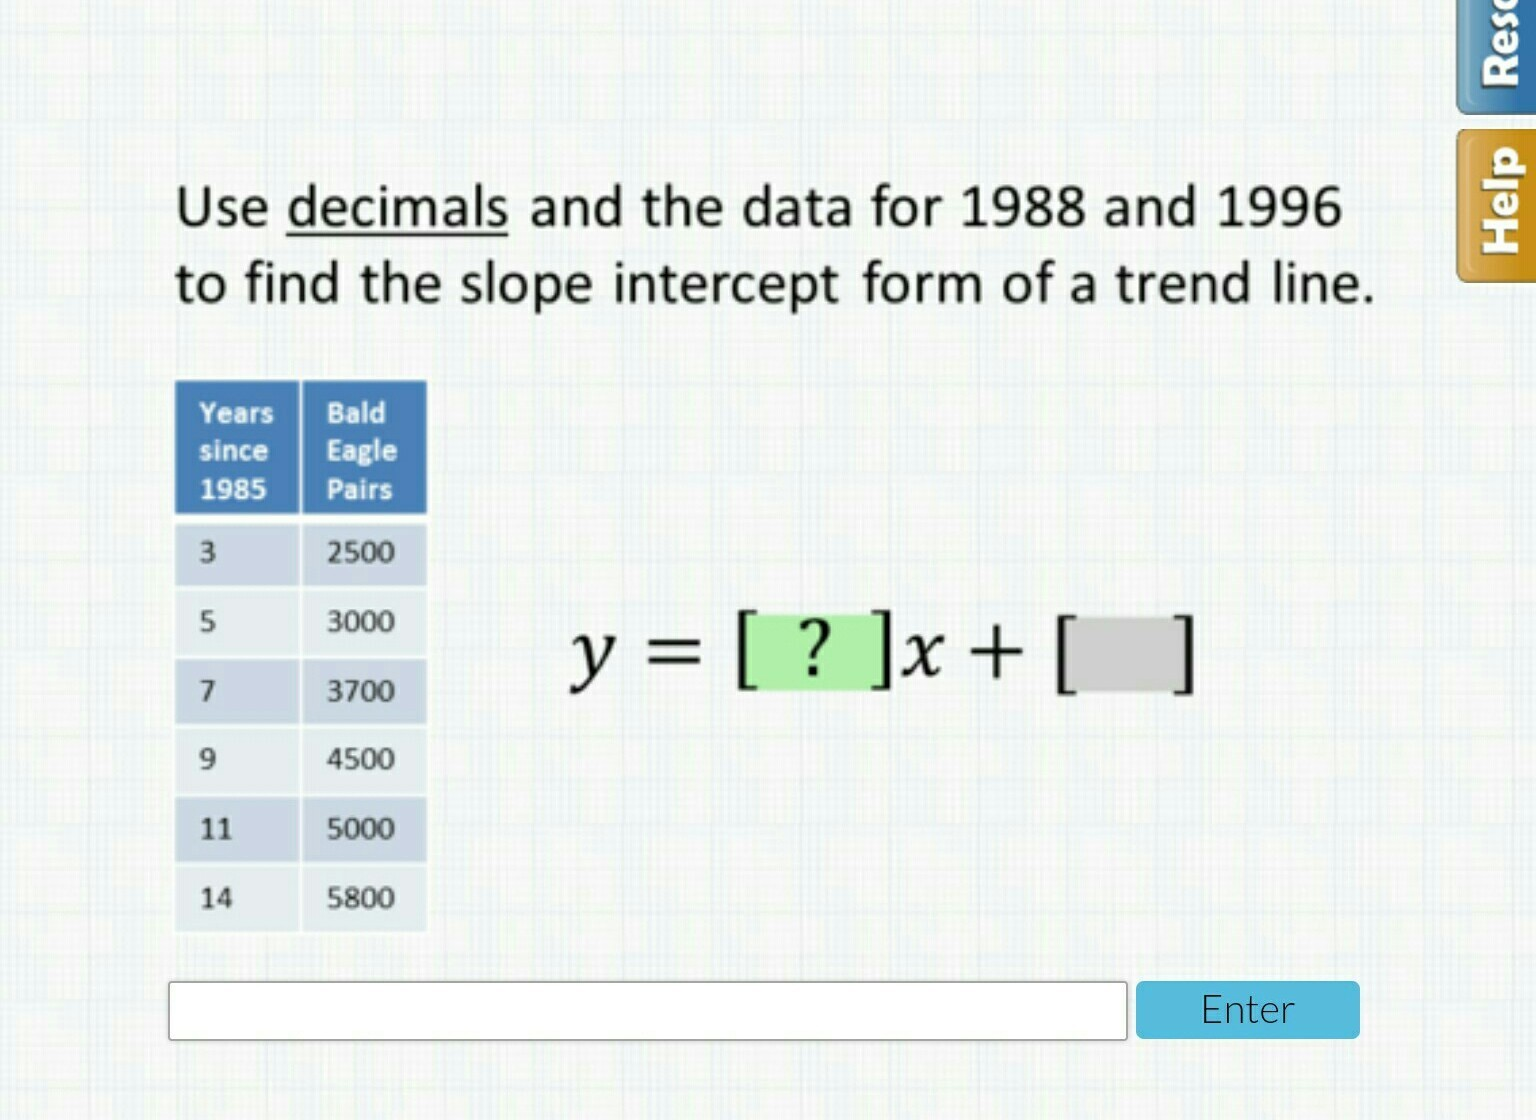 Use Decimals And The Data For 1988 And 1996 To Find The Slope